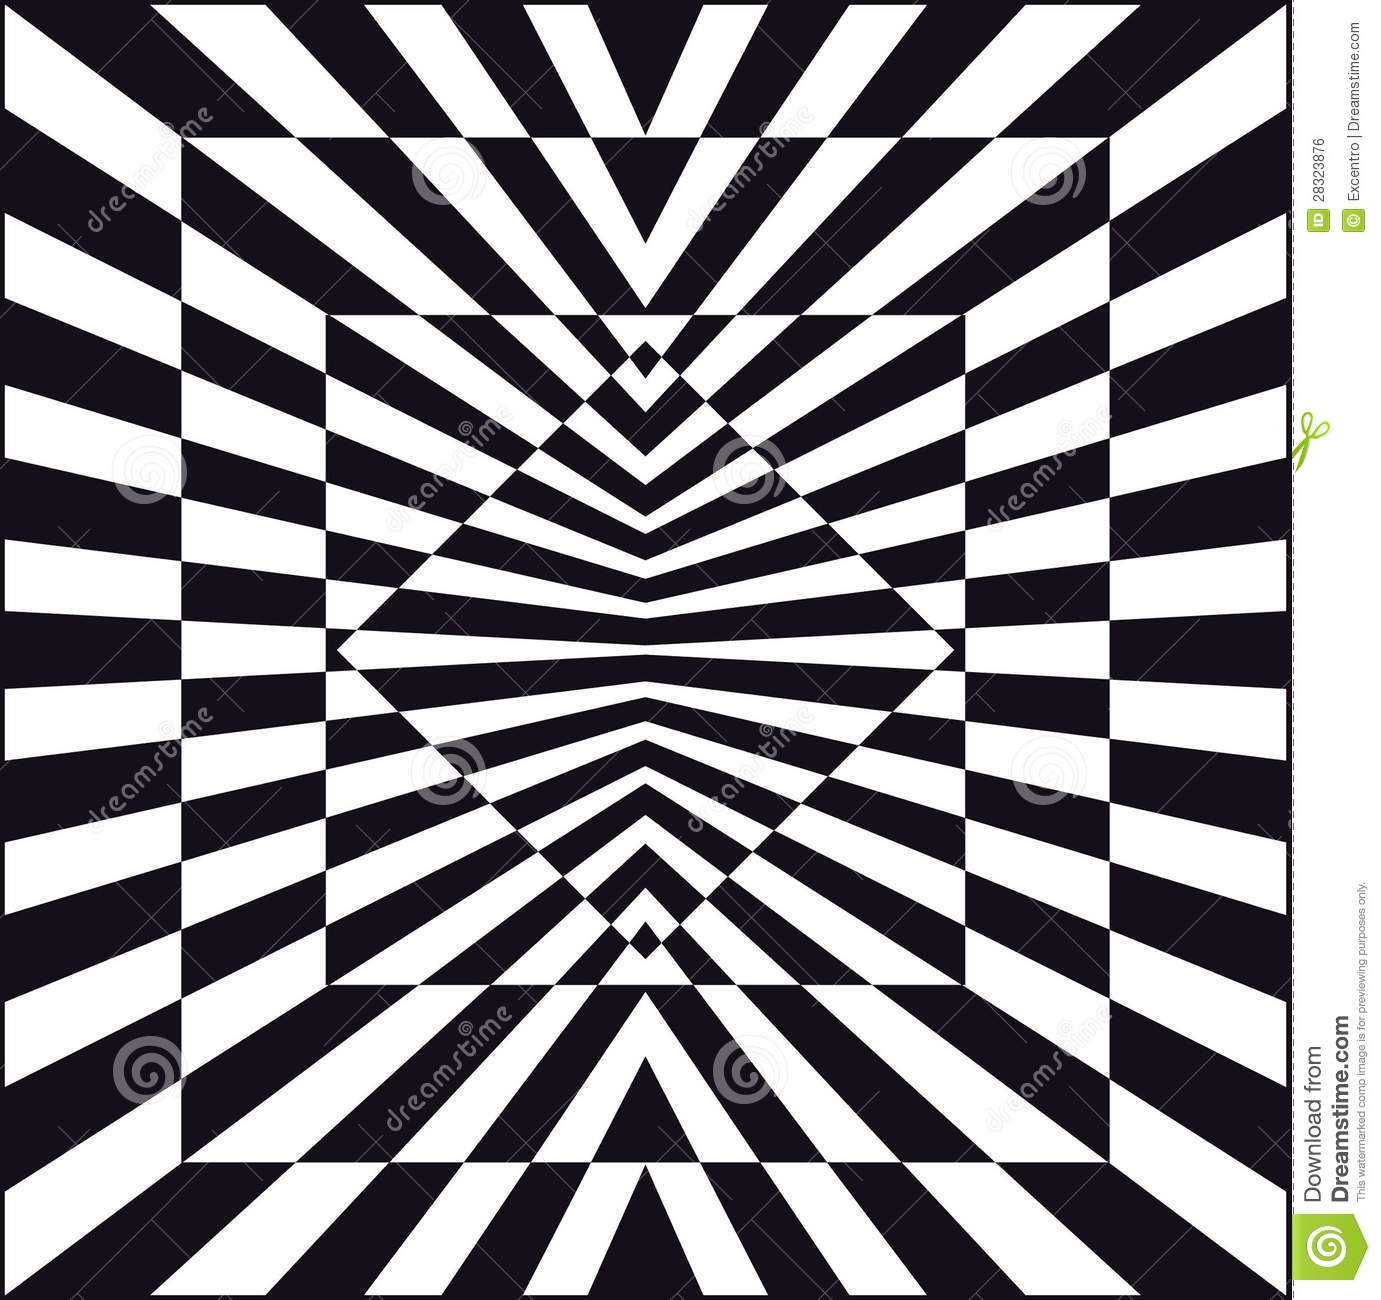 Black And White Geometric Wallpaper Optical Art Stock Vector Image Of Flag Llusion Graphic